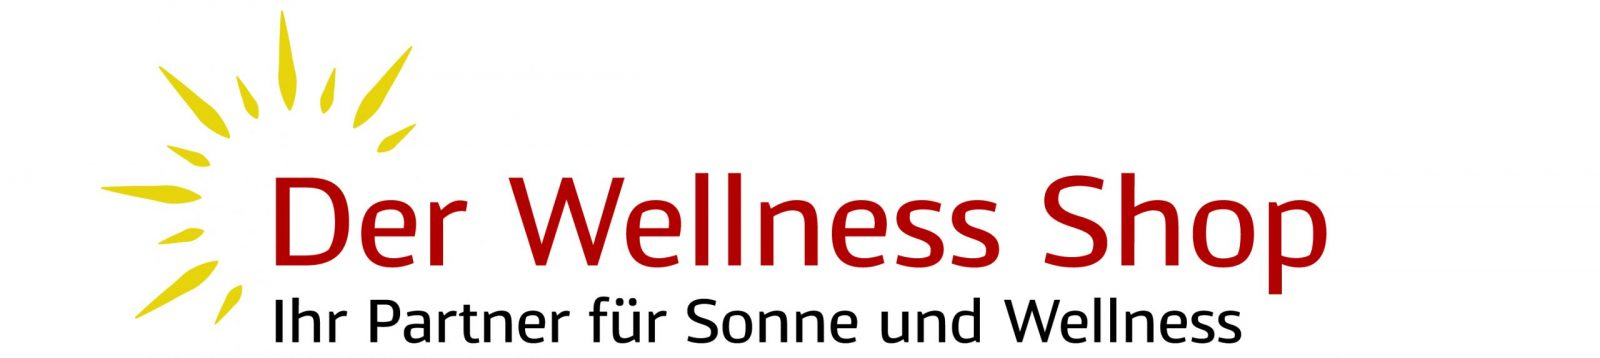 Der Wellnessshop